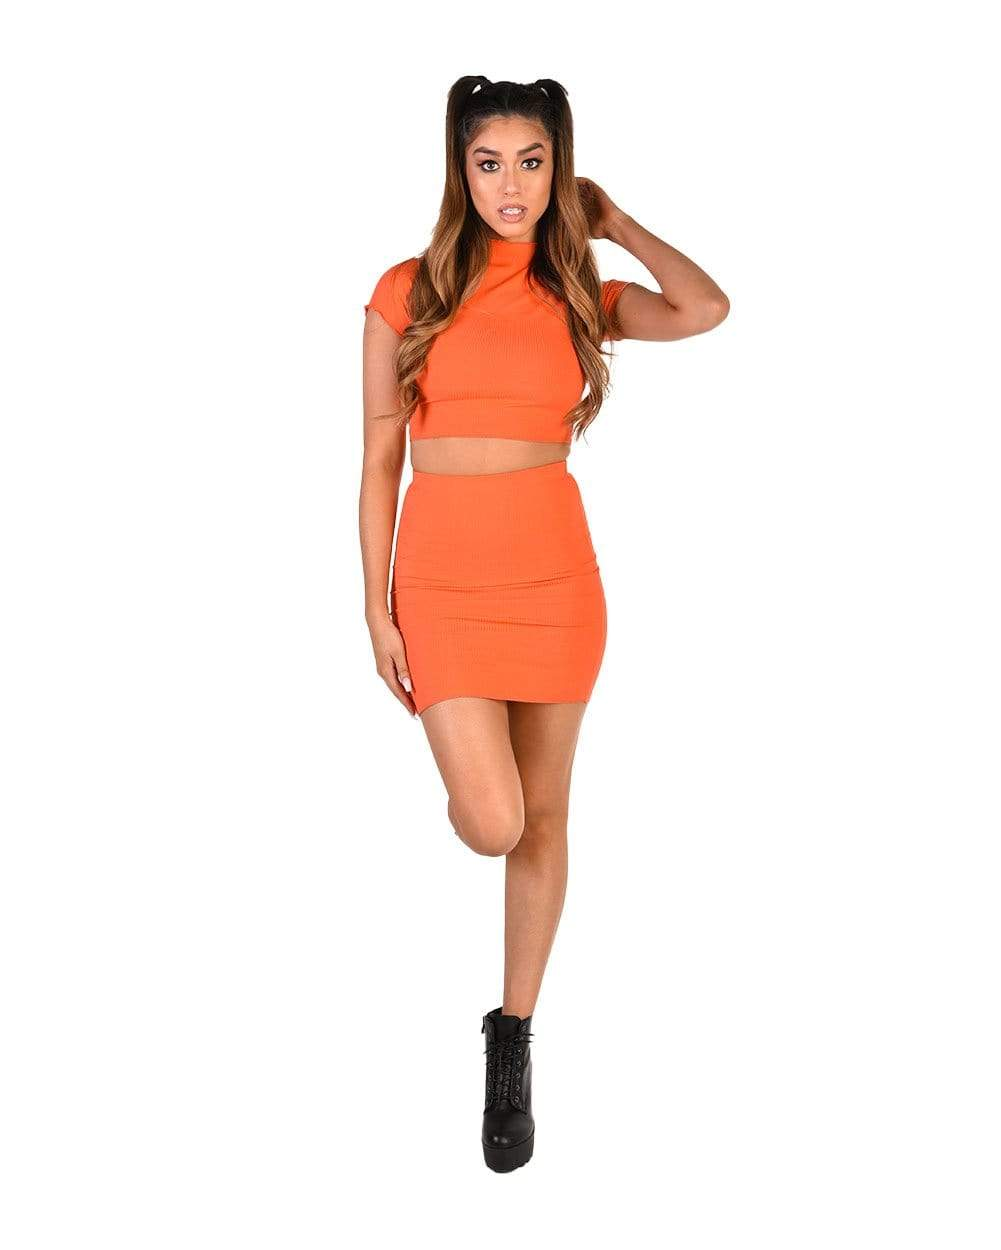 a03d9fc1c4d So Sassy High Neck Crop Top & Skirt Set - EDM Sauce